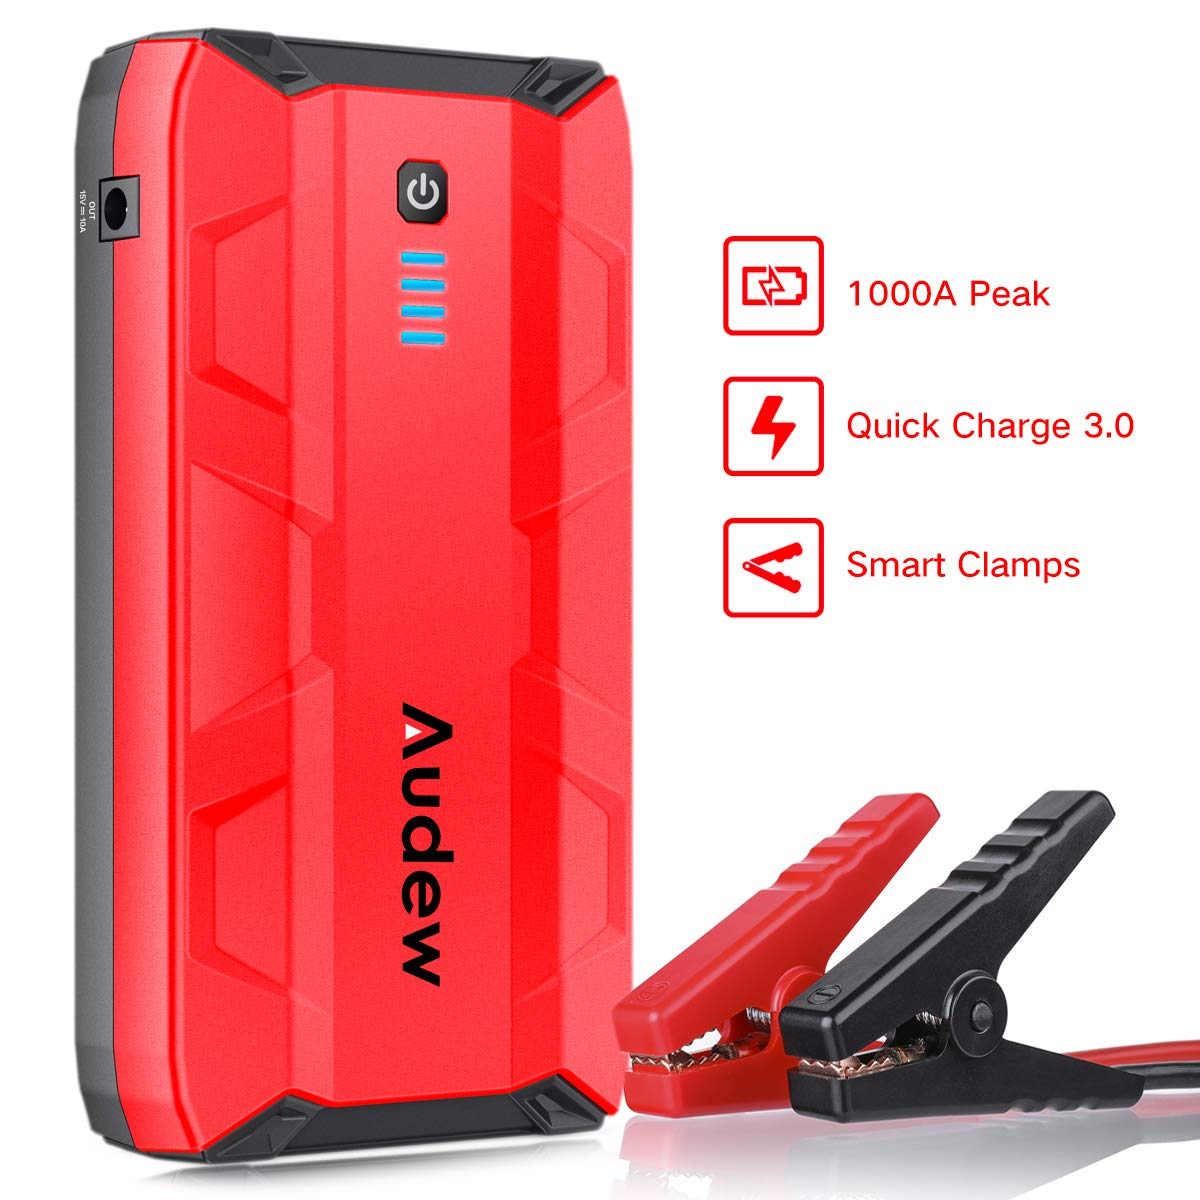 Audew Car Battery Charger,Jump Starter Battery Booster 10800mAh 12V 1000A Peak, Battery Jumpstarter, Portable Charger Emergency Power Bank with LED Flashlight and Dual USB Outputs,for Automotive,Boat